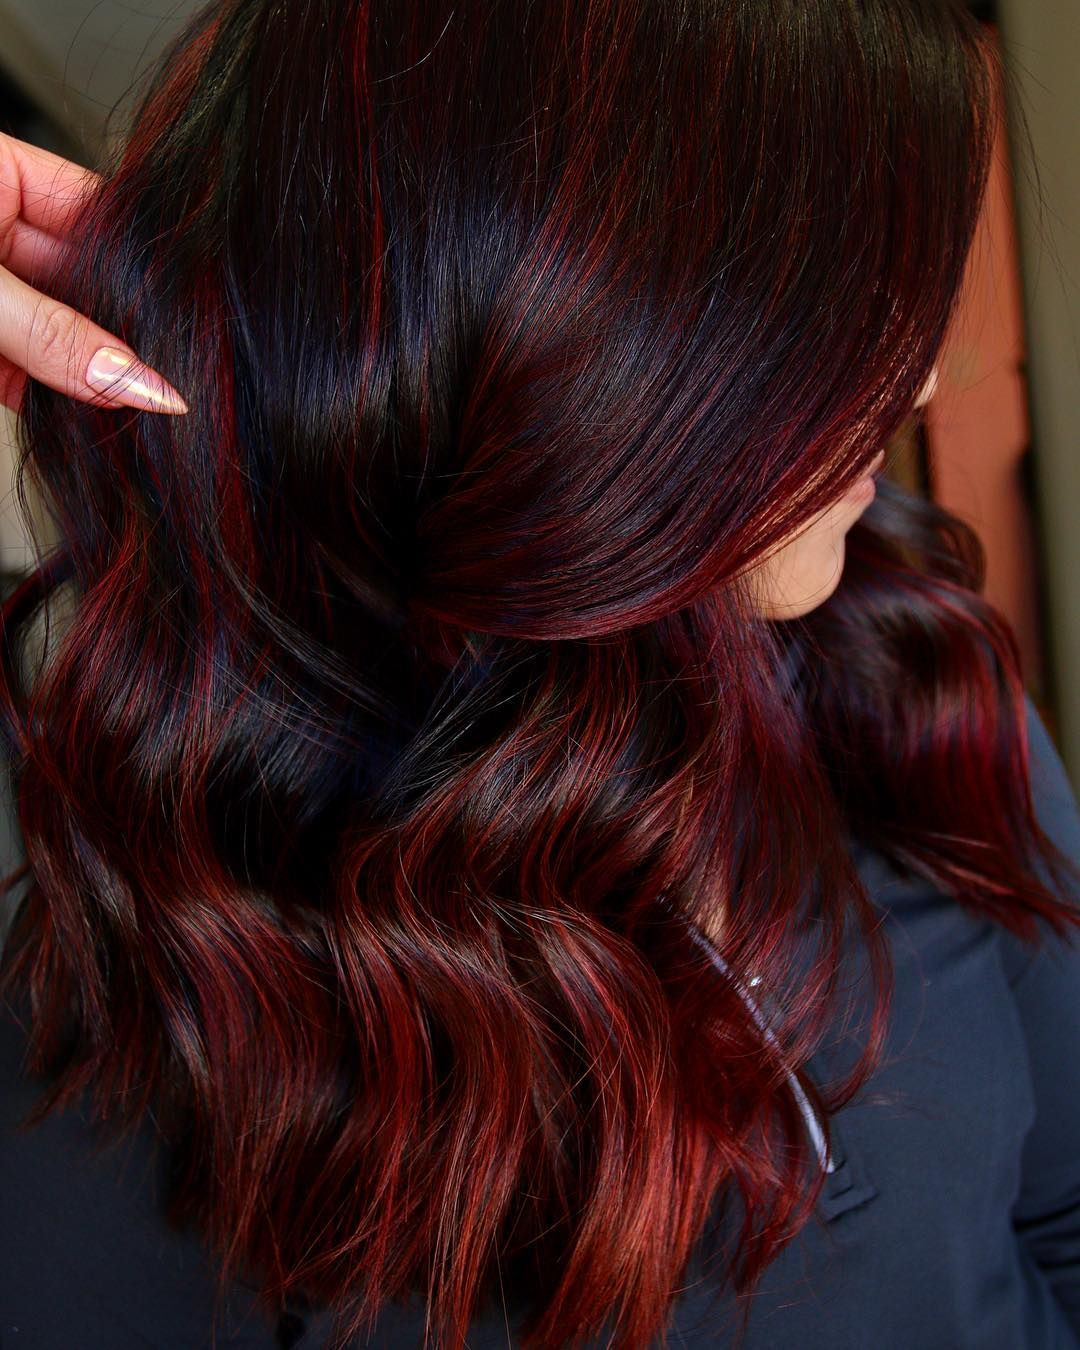 Level 3 Dark Hair With Red Highlights Red Highlights In Brown Hair Red Balayage Hair Dying Hair Red